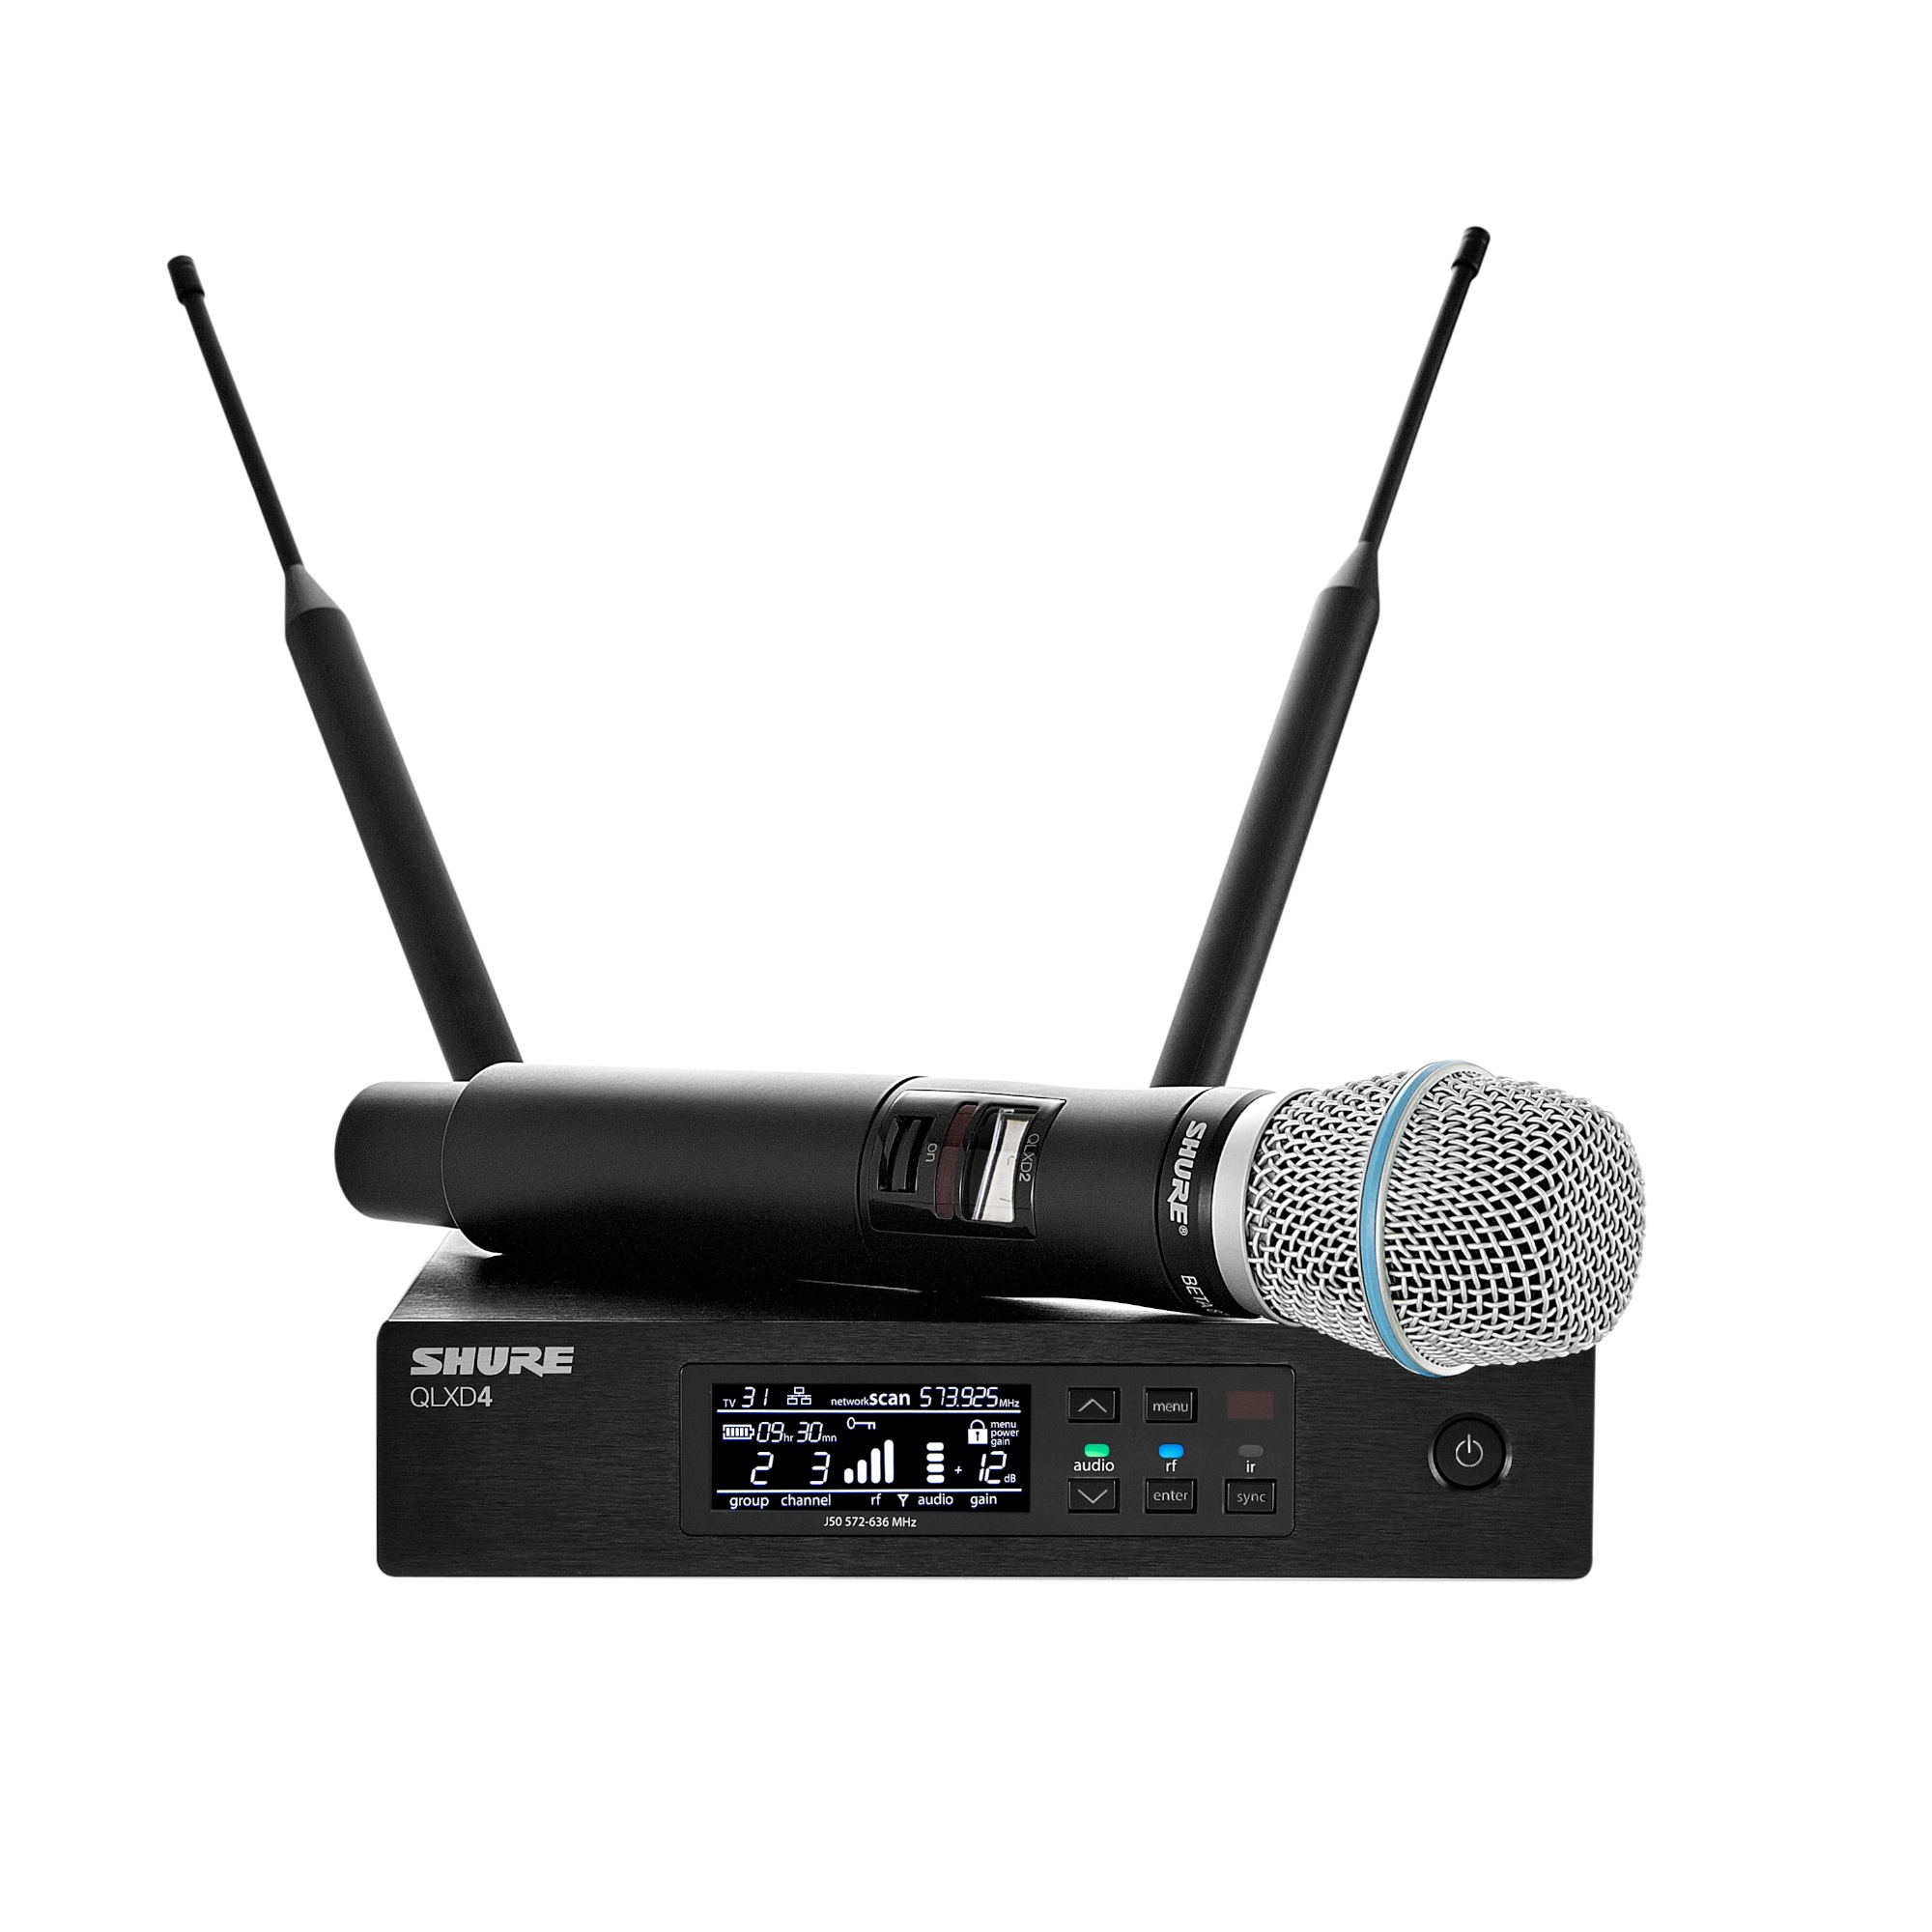 shure qlxd24 beta87 digital wireless handheld microphone system pro audio superstore. Black Bedroom Furniture Sets. Home Design Ideas